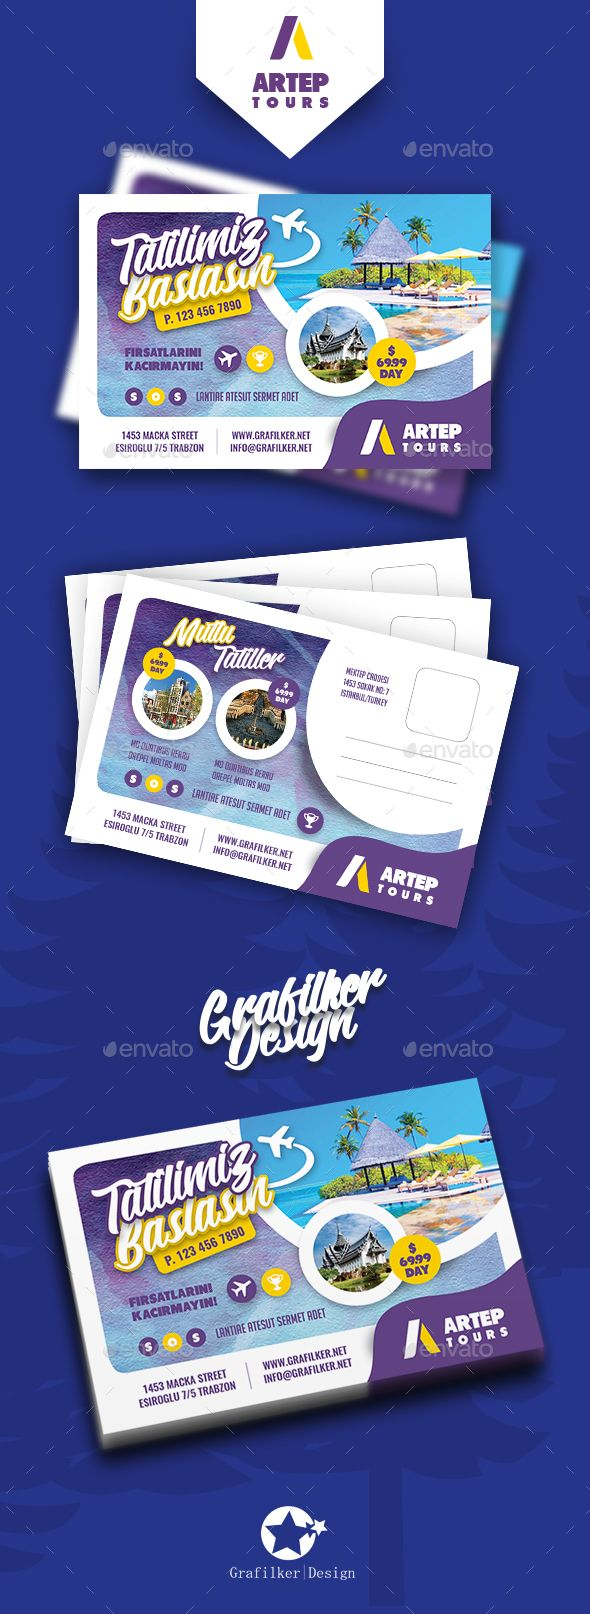 Travel Tour Postcard Templates — Photoshop PSD #app #ad • Download ➝ https://graphicriver.net/item/travel-tour-postcard-templates/19718764?ref=pxcr